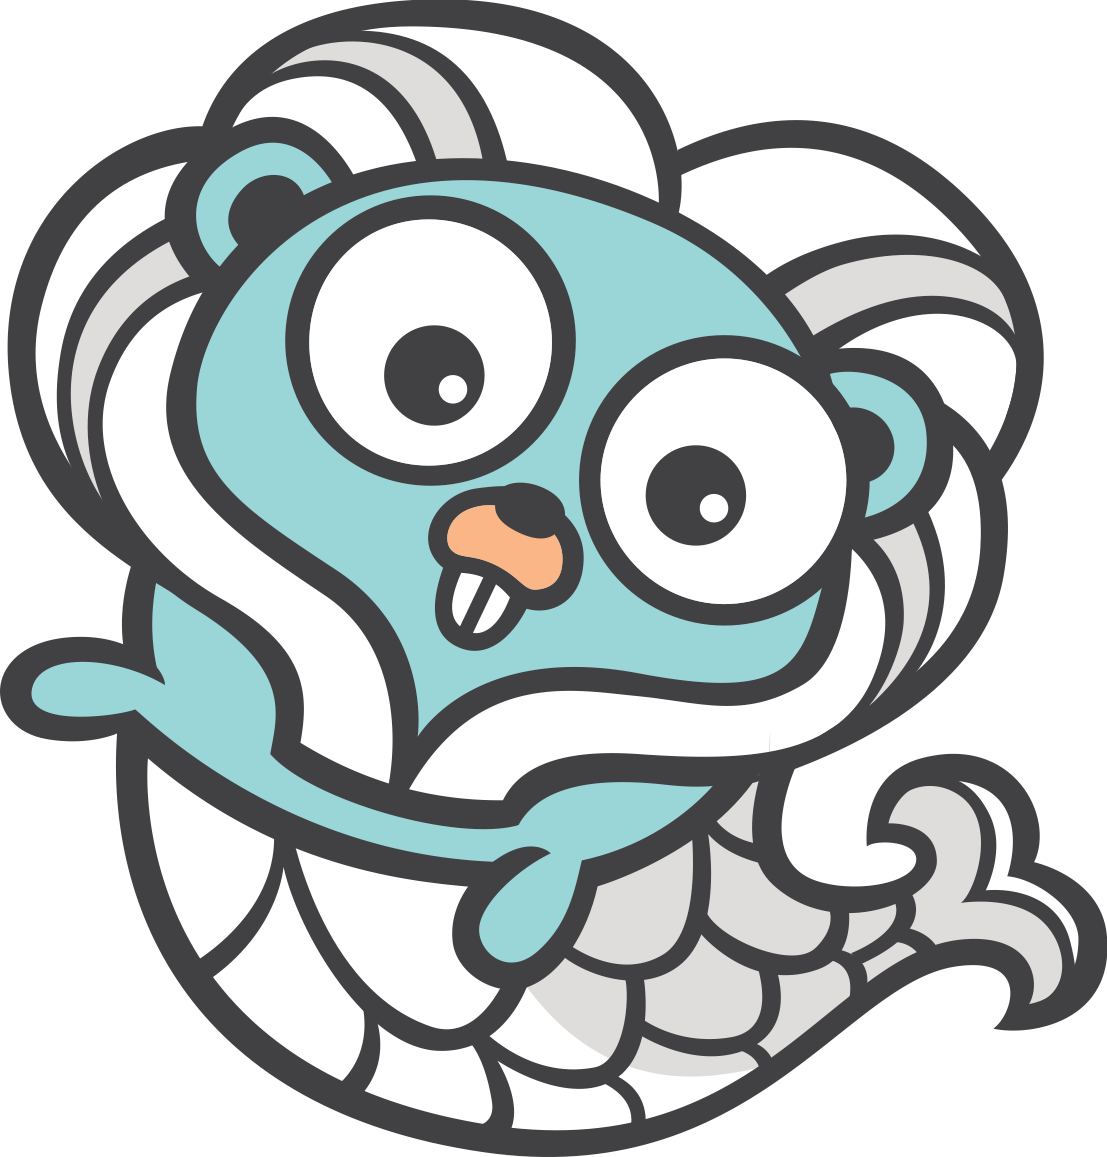 Unit Testing in Golang: Basic intro (What, Why) @ GoSG Meetup